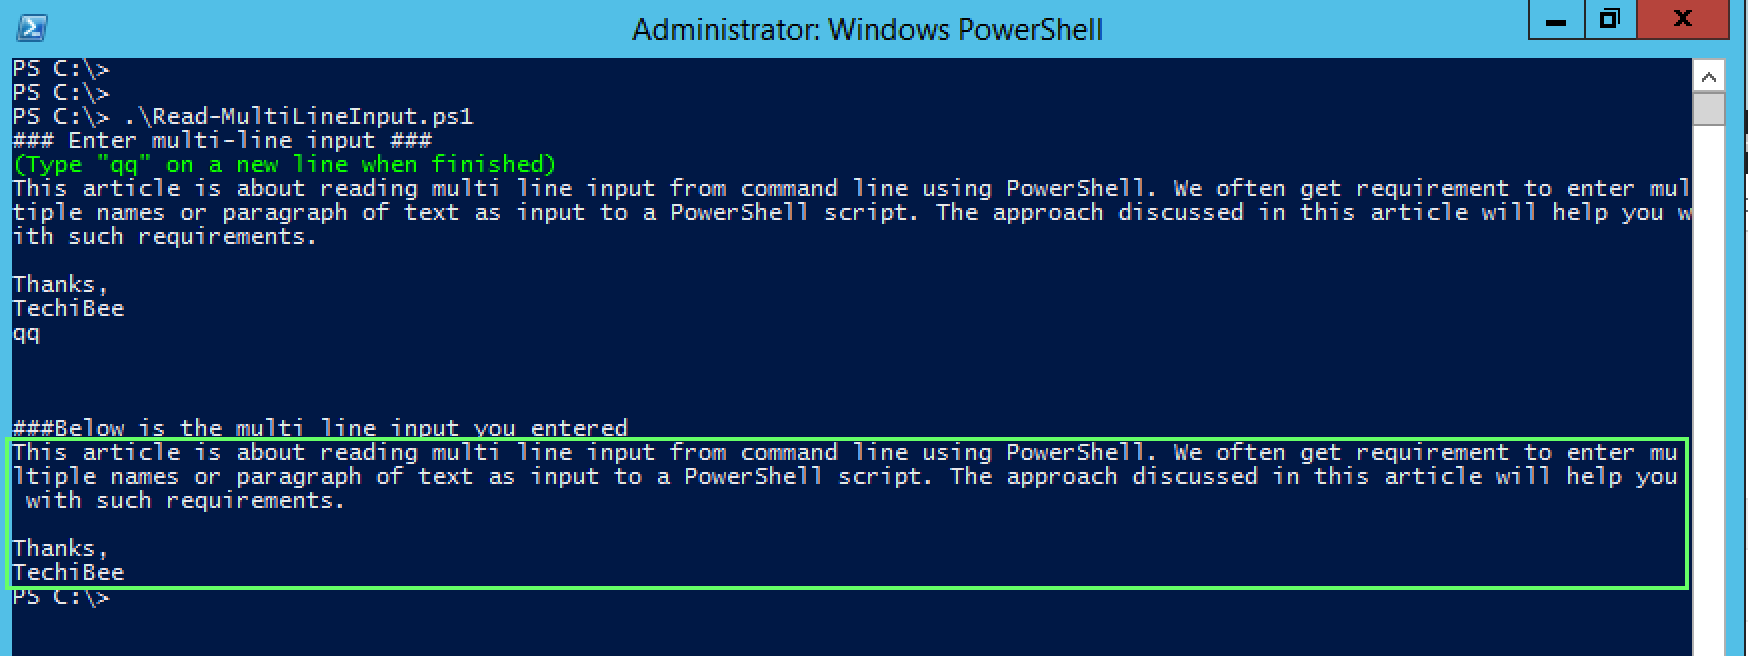 PowerShell: How to give Multi-line input to script